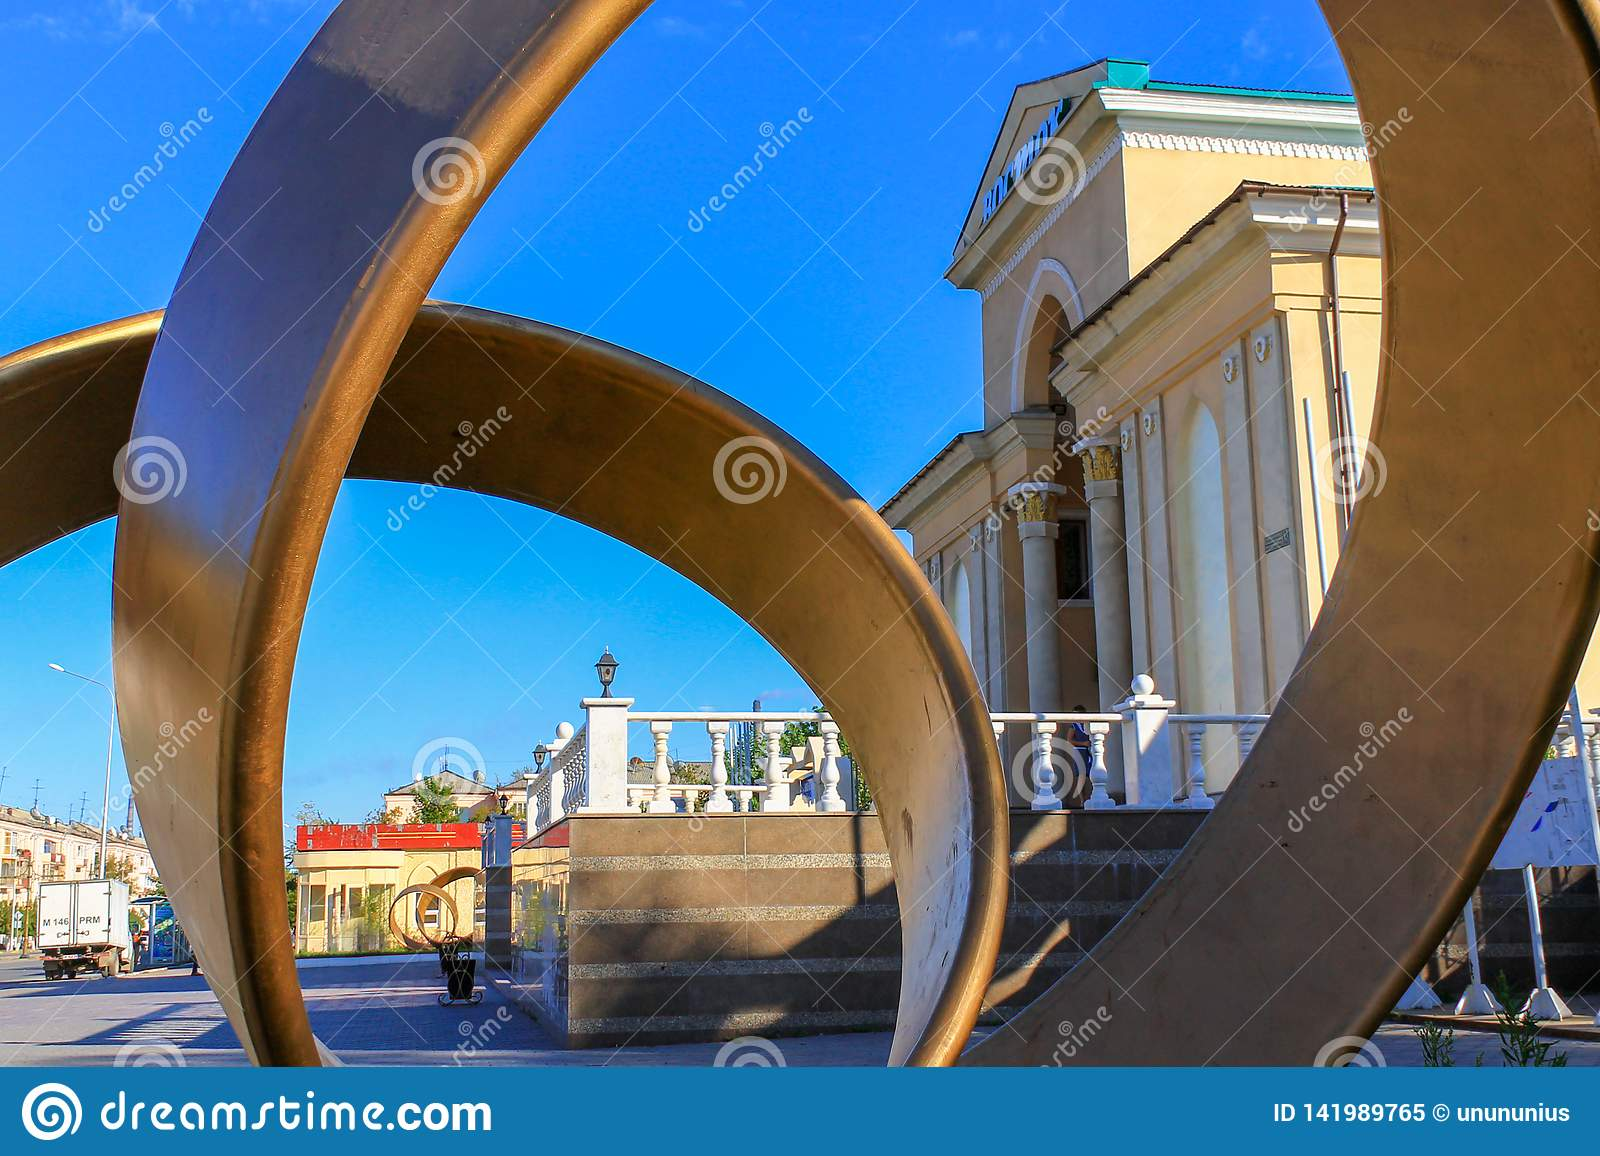 Historical Main Entrance to the large Cinema Theater, called Wostok. Look through the Monument. Near Kio park. Located Downtown of